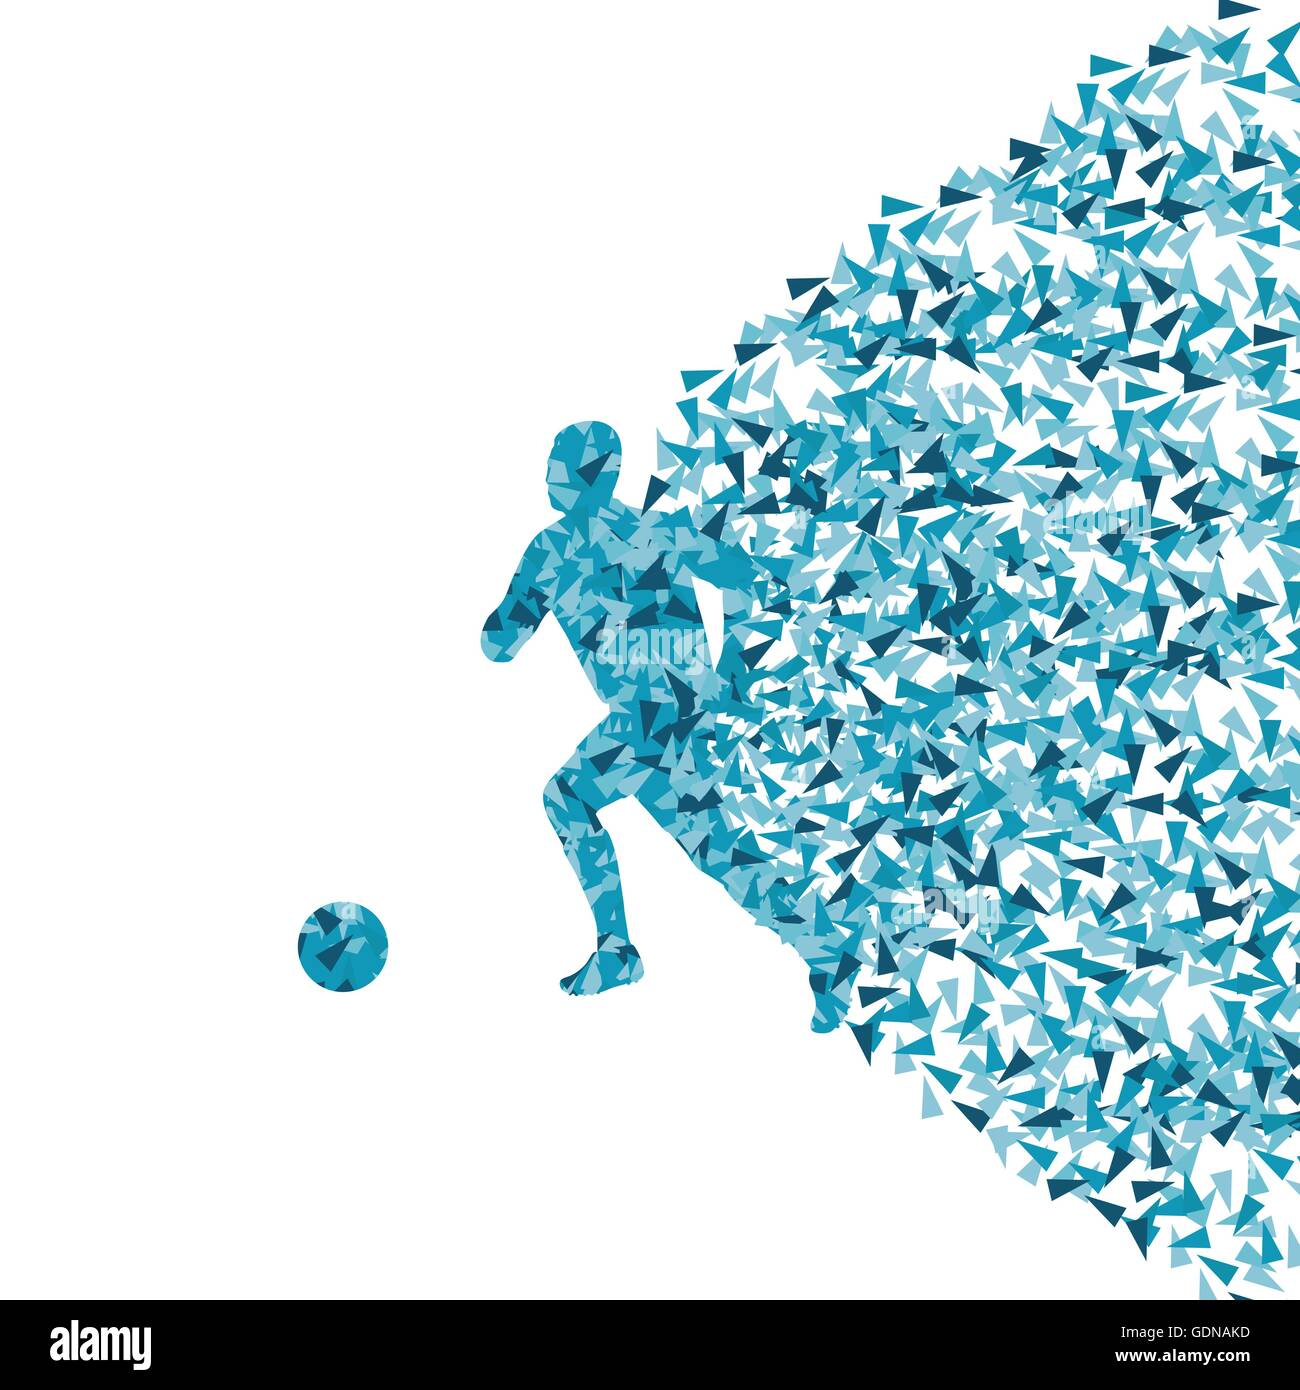 Soccer player silhouette made of triangle fragments vector abstract background for poster - Stock Image